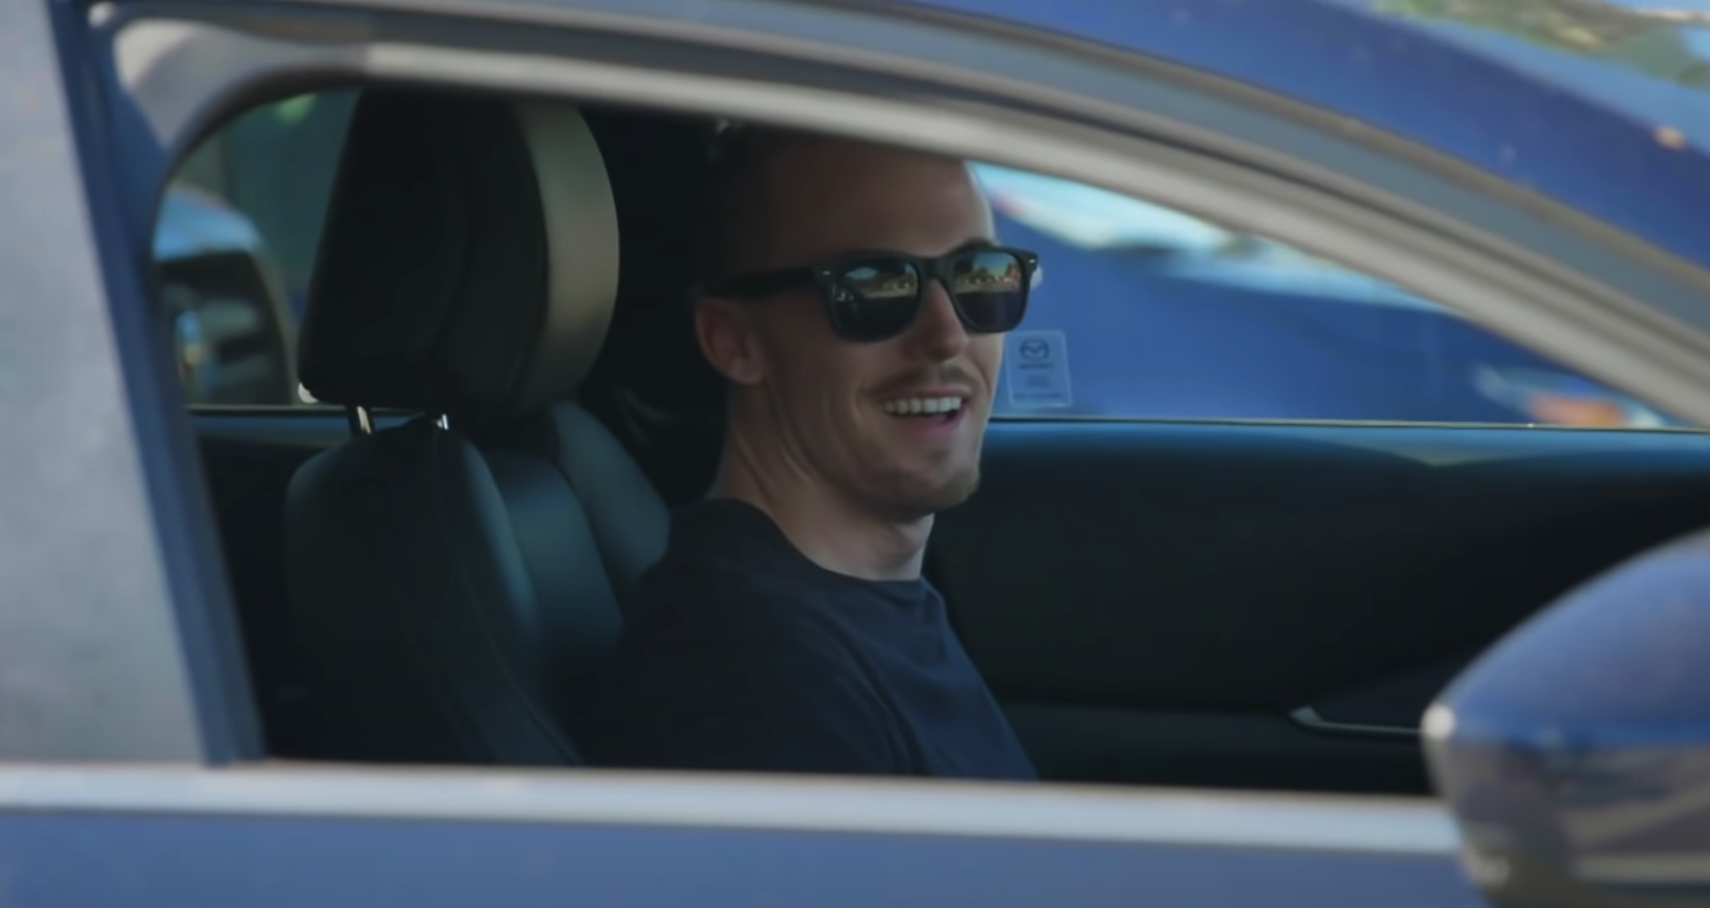 Smiling man wearing sunglasses sits in the driver's seat and looks at the camera